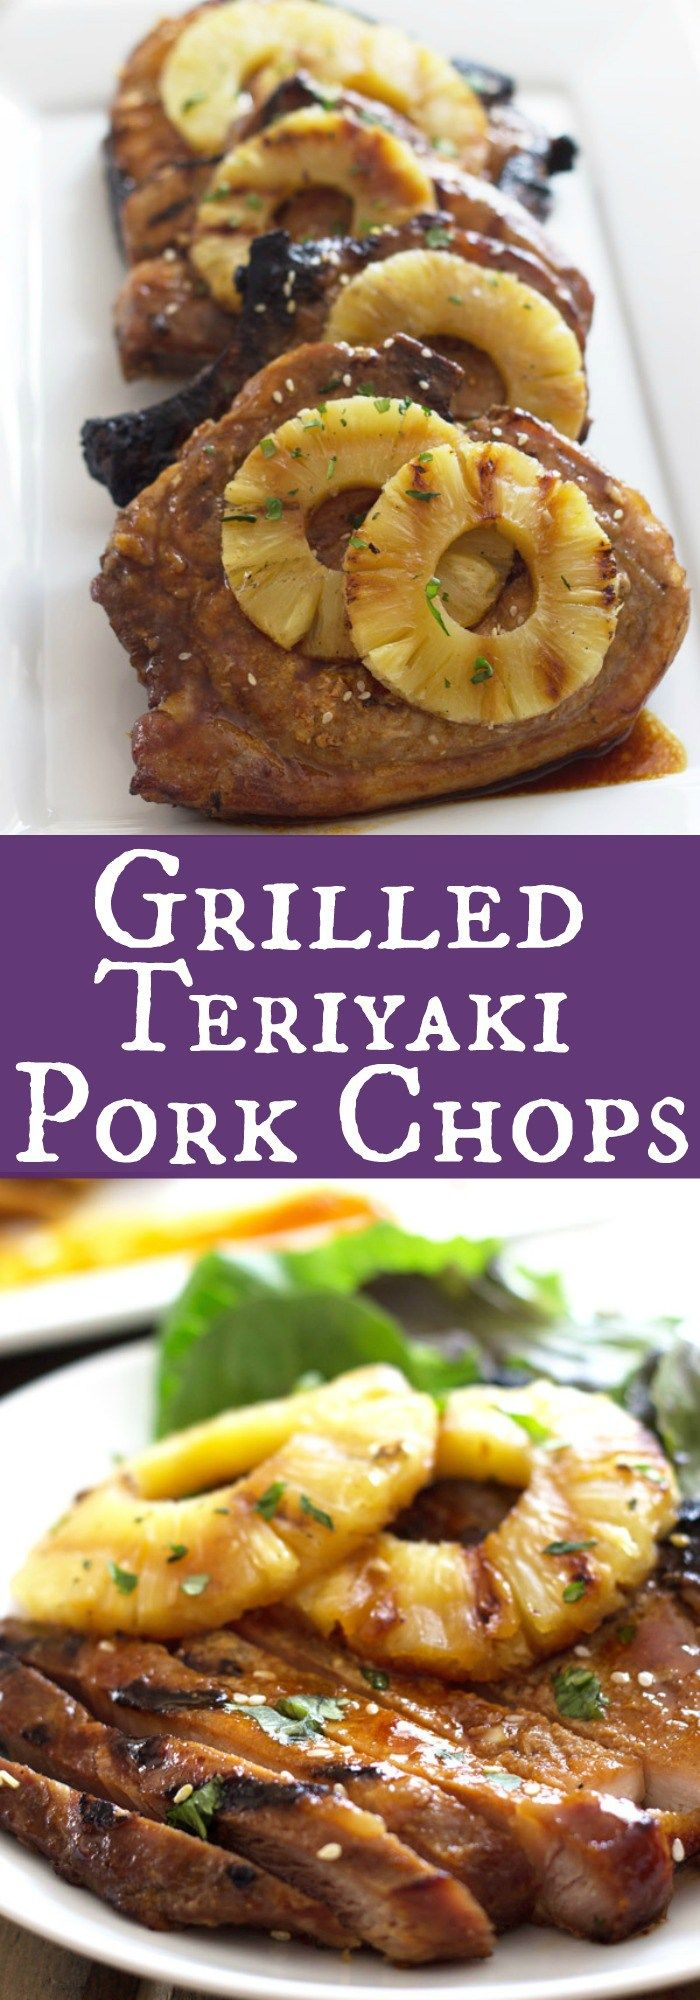 Grilled Teriyaki Pork Chops - pork chops marinated in a simple homemade teriyaki sauce then grilled to perfection!